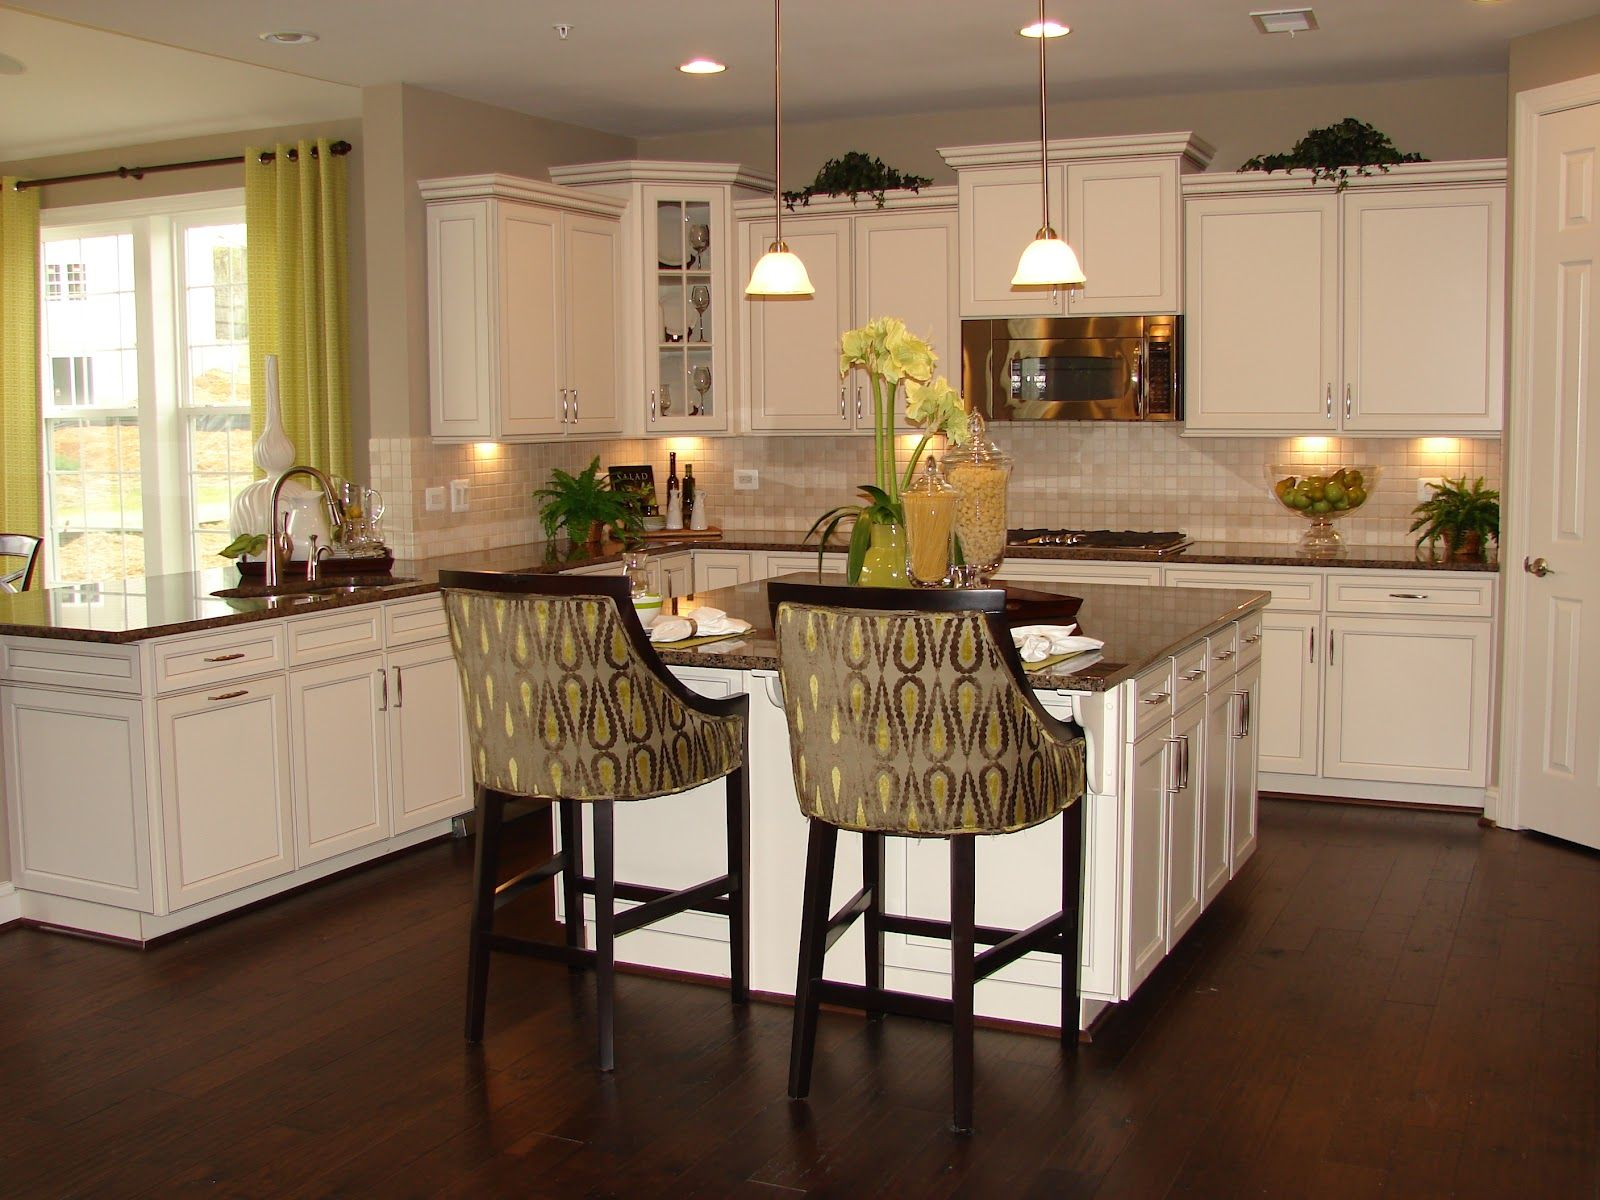 kitchen kitchen with white cabinets pictures of kitchens with white cabinets this is my dream kitchen but it is a